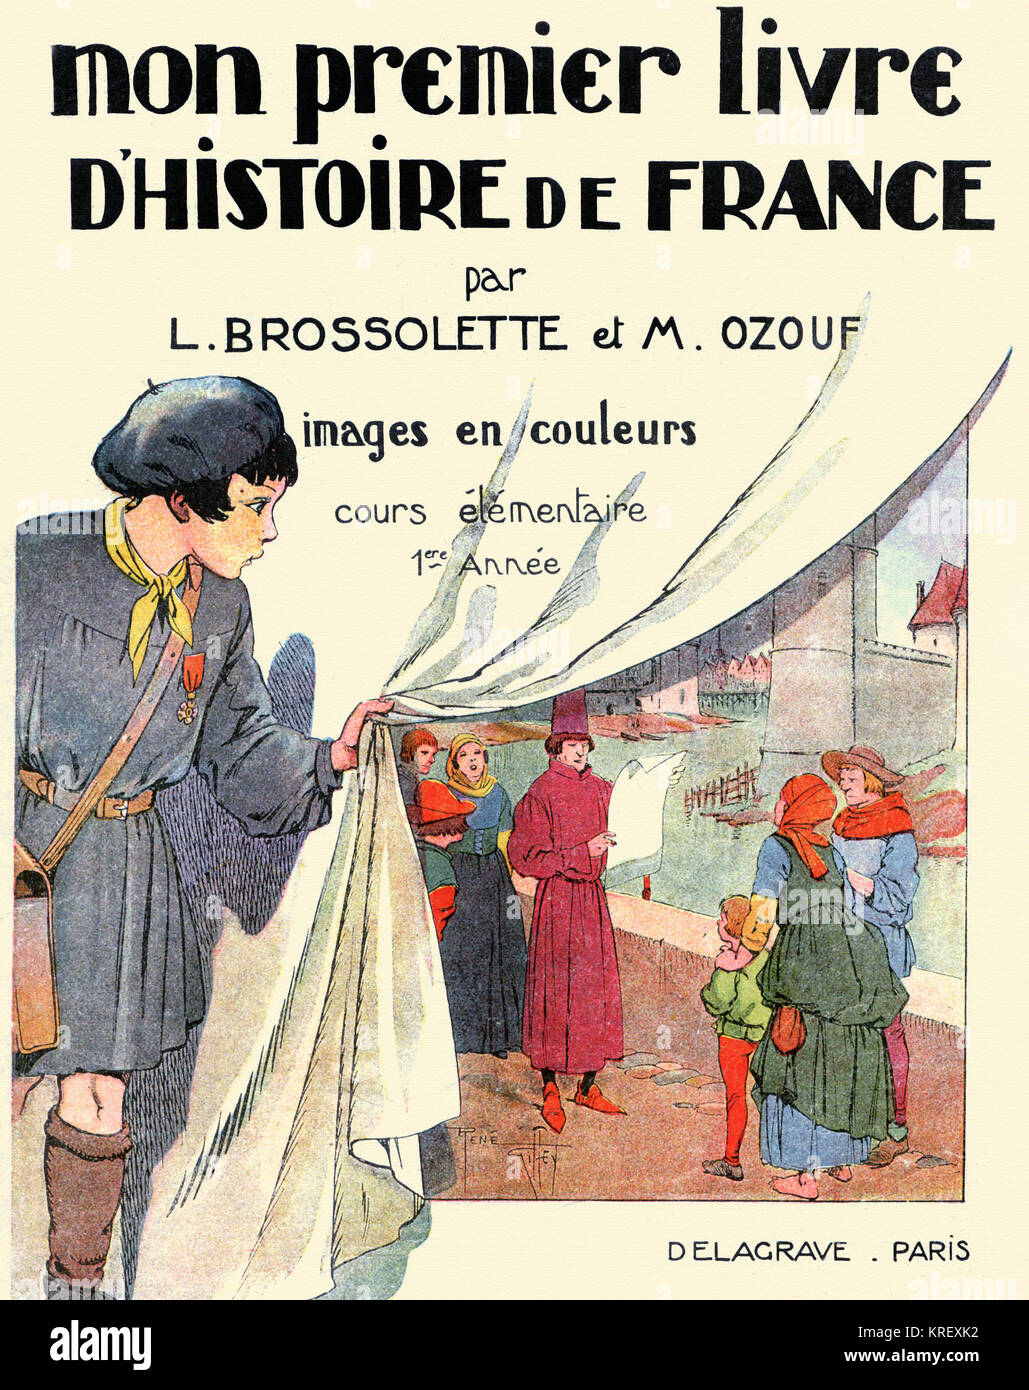 First Book on the History of France Cover - Stock Image